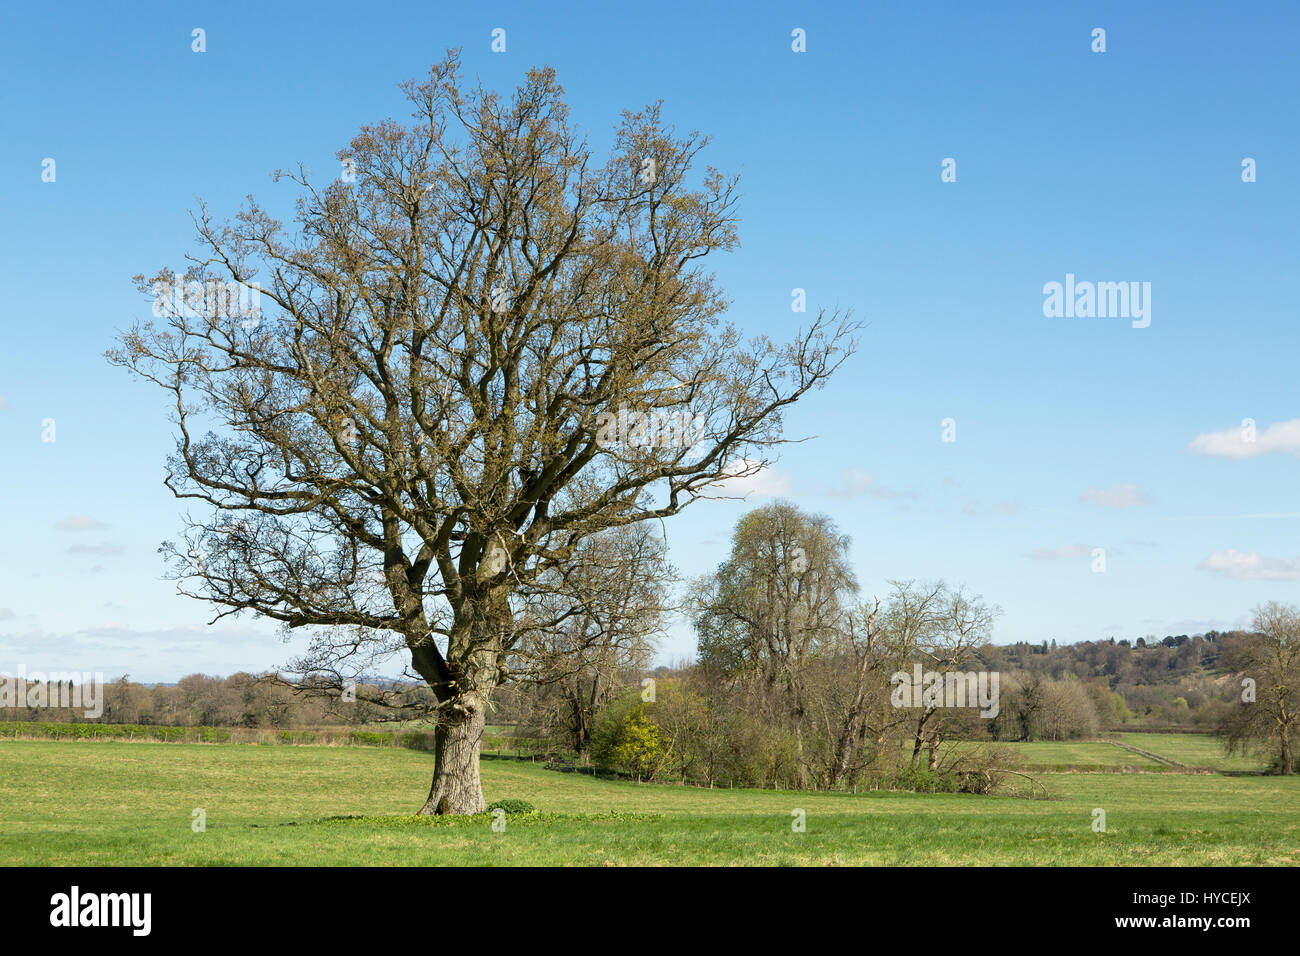 Bare trees on a fine spring day with clear blue skies. Typical Hampshire countryside with early seasonal colour - Stock Image